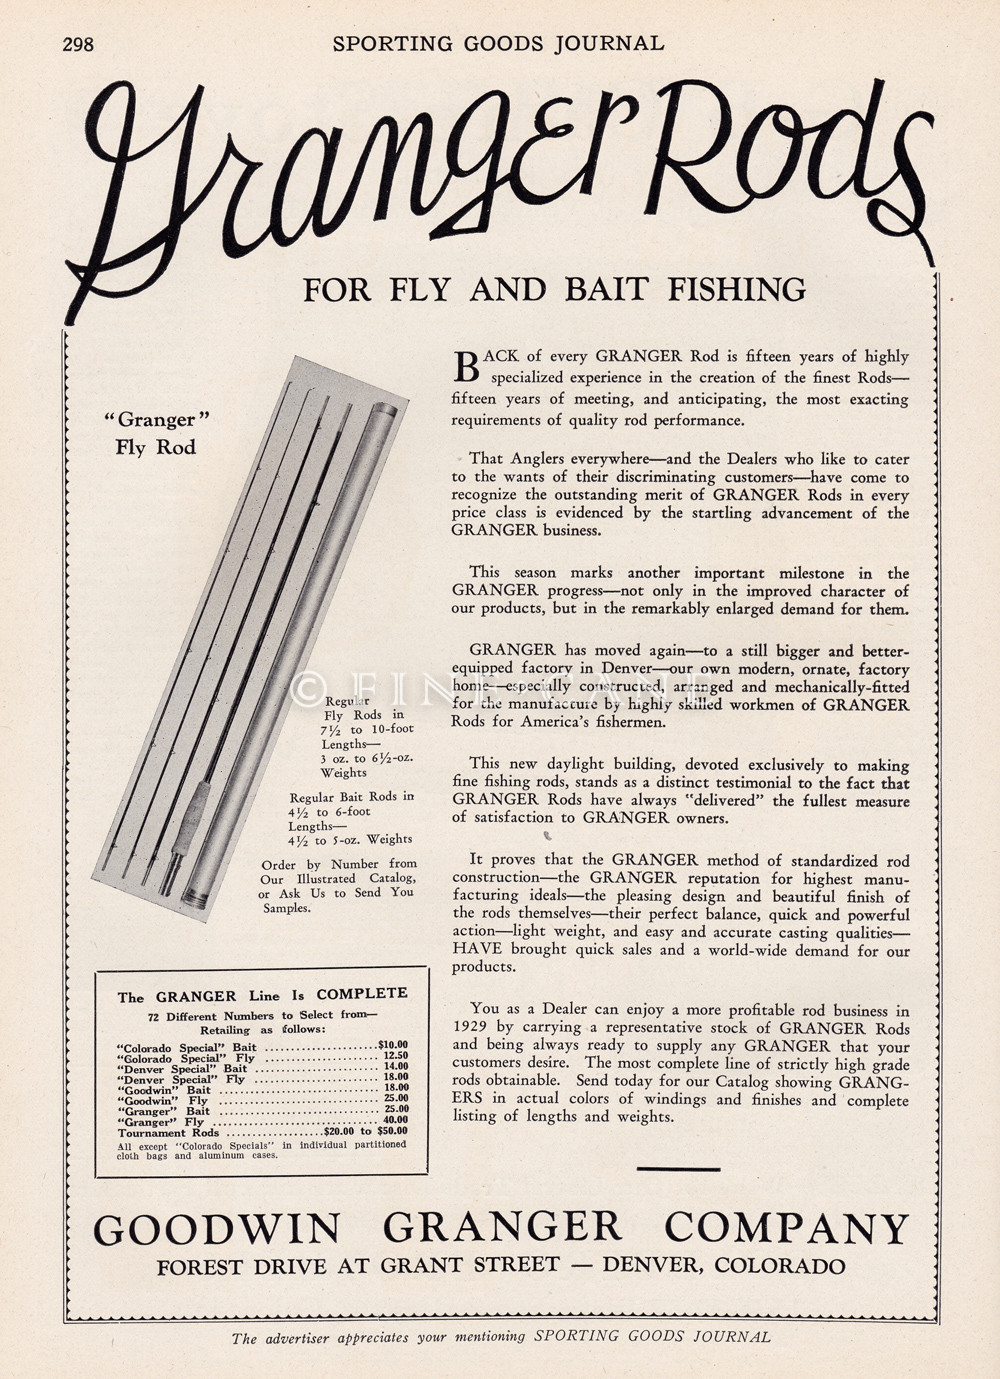 1929 Sporting Goods Journal Ad